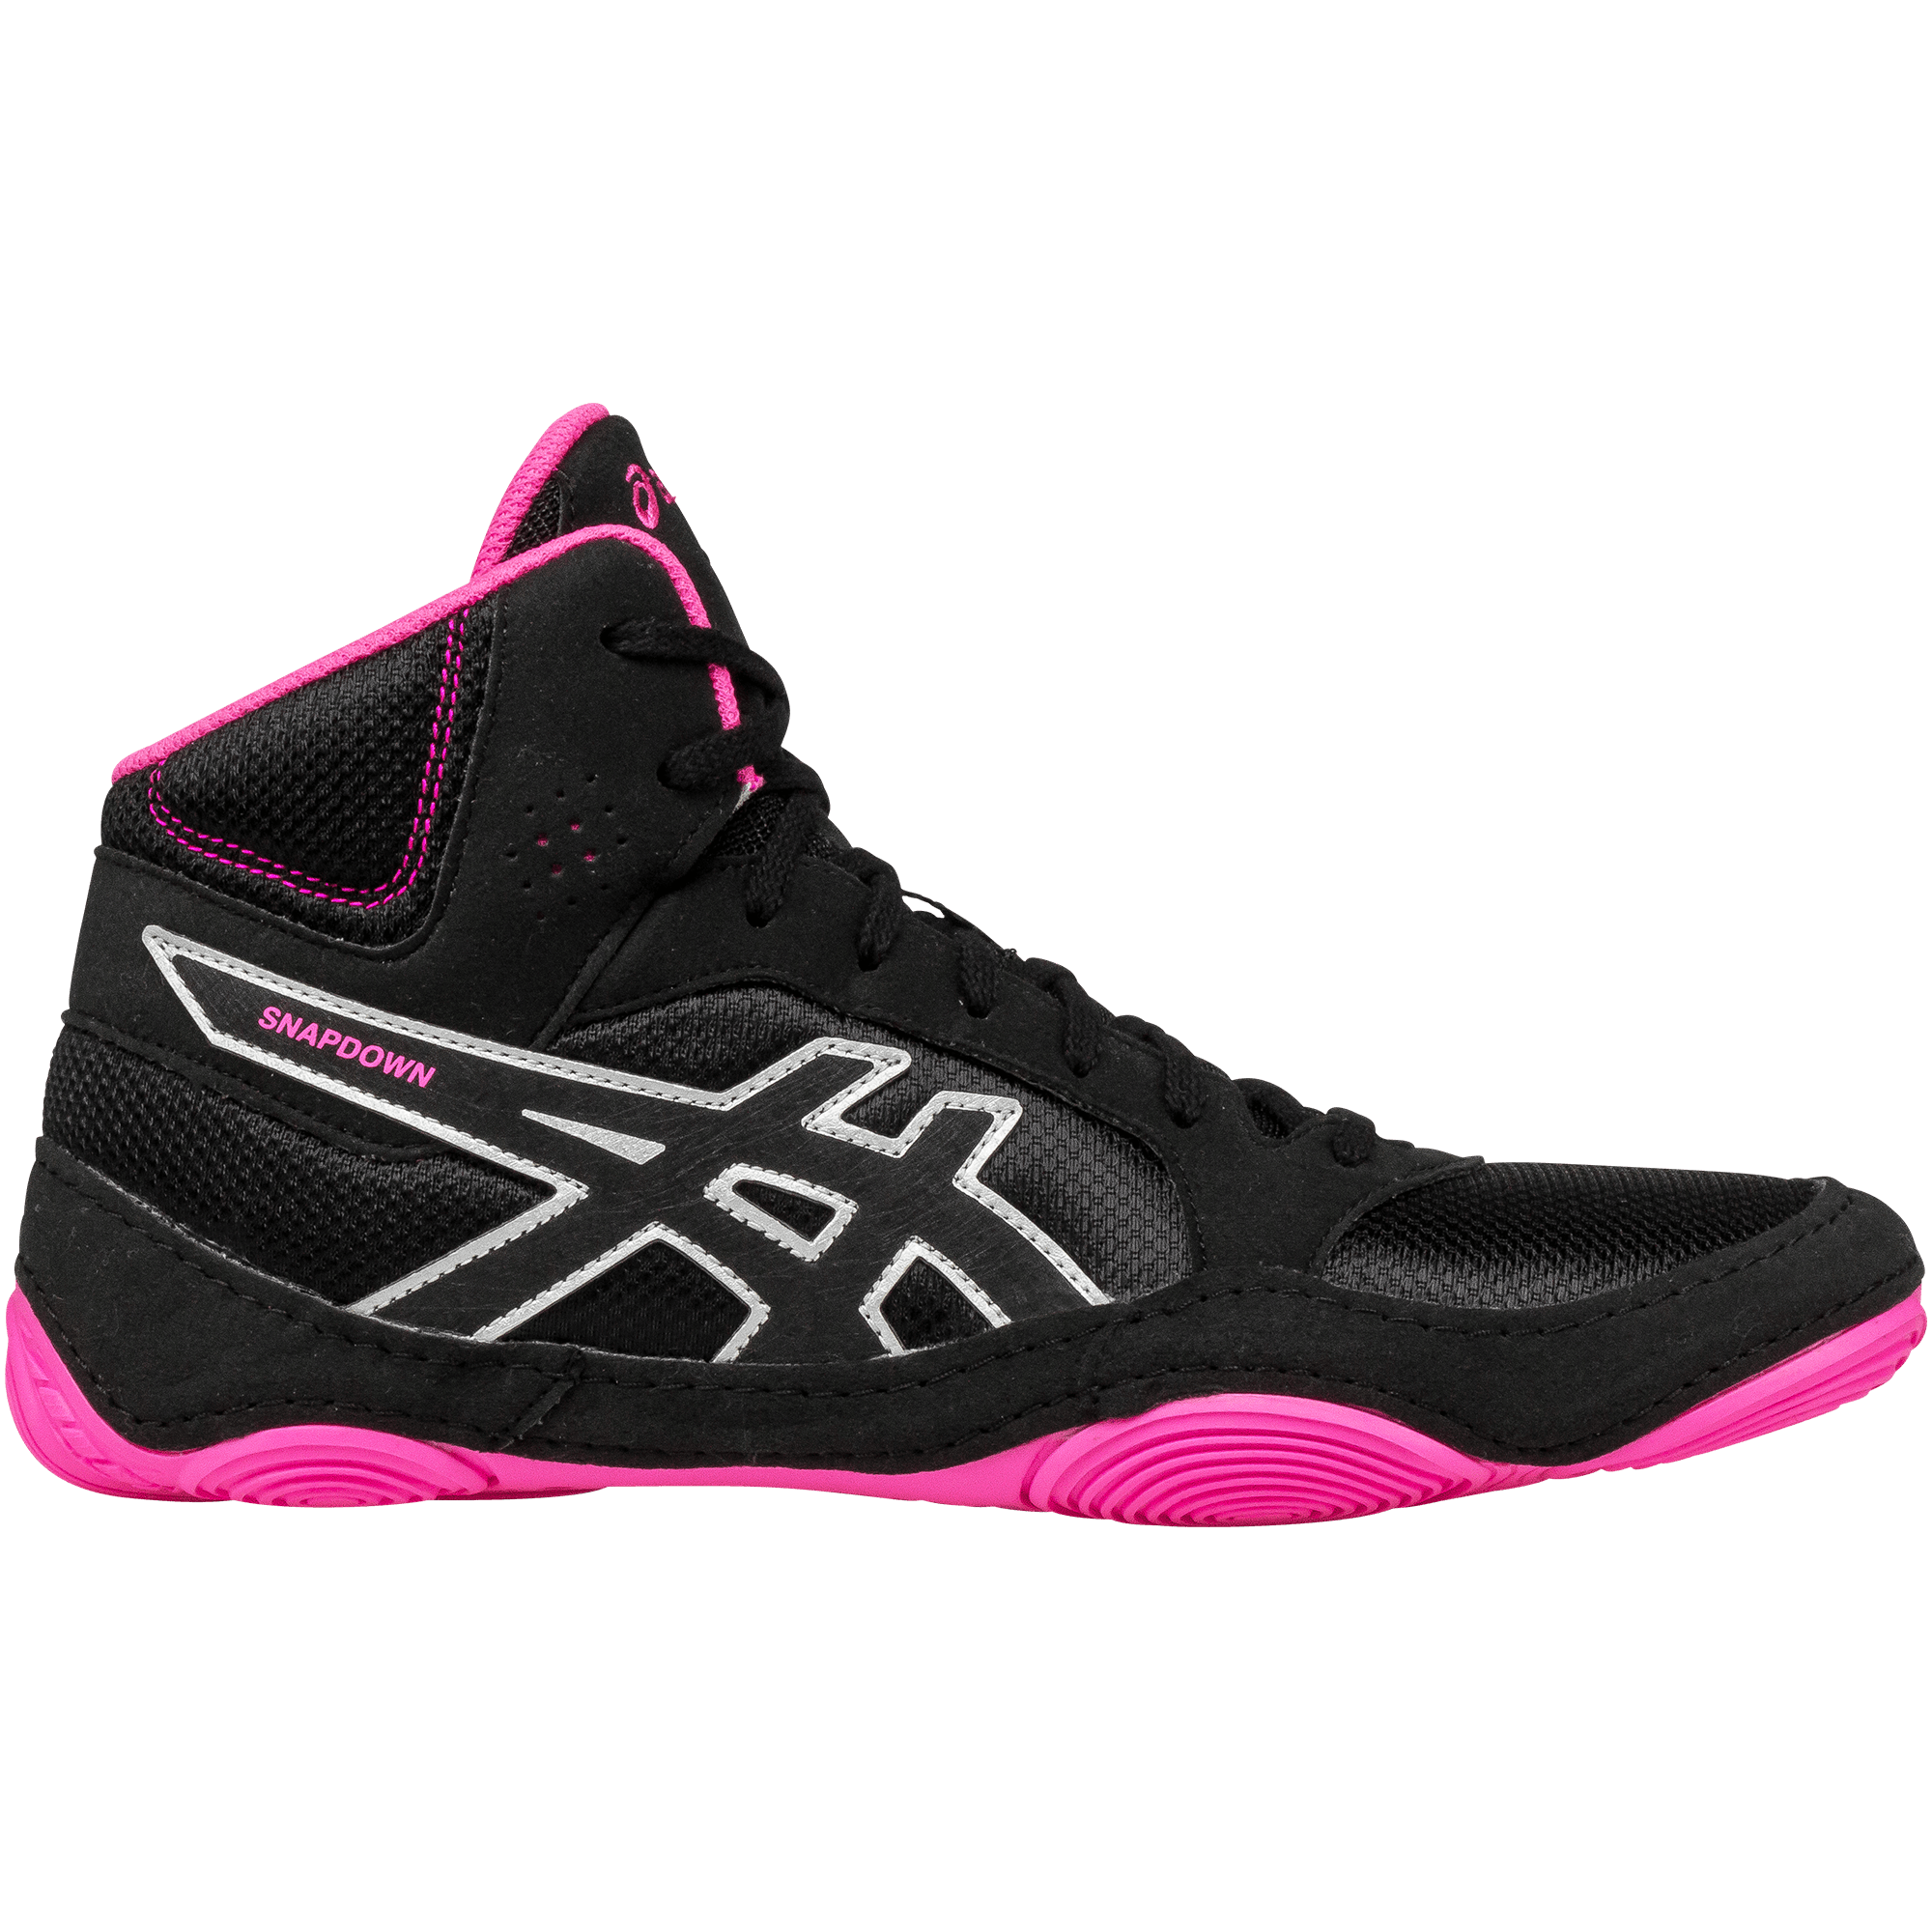 Asics Snapdown 2 Pink Wrestling Shoes